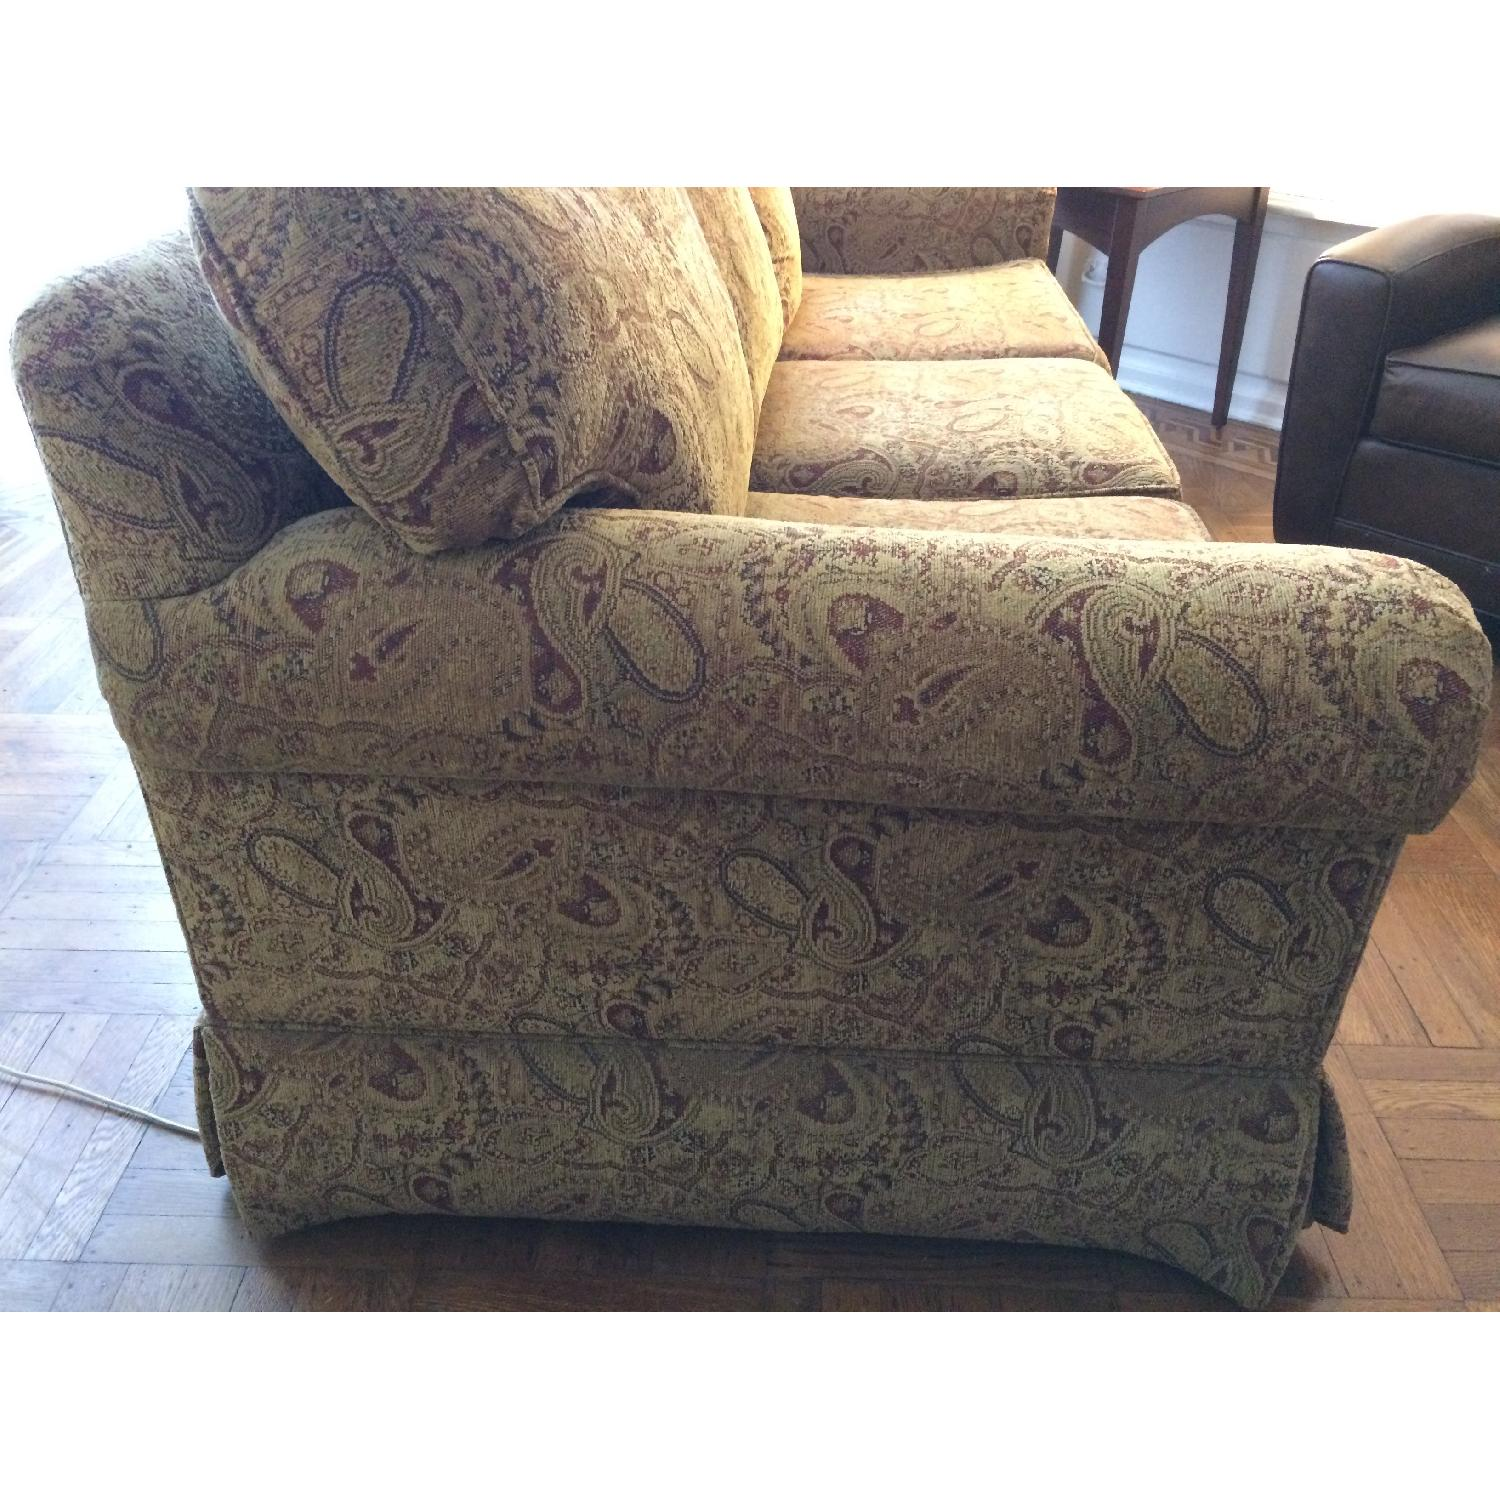 Ethan Allen Slipcovered Rolled Arm Sofa-2